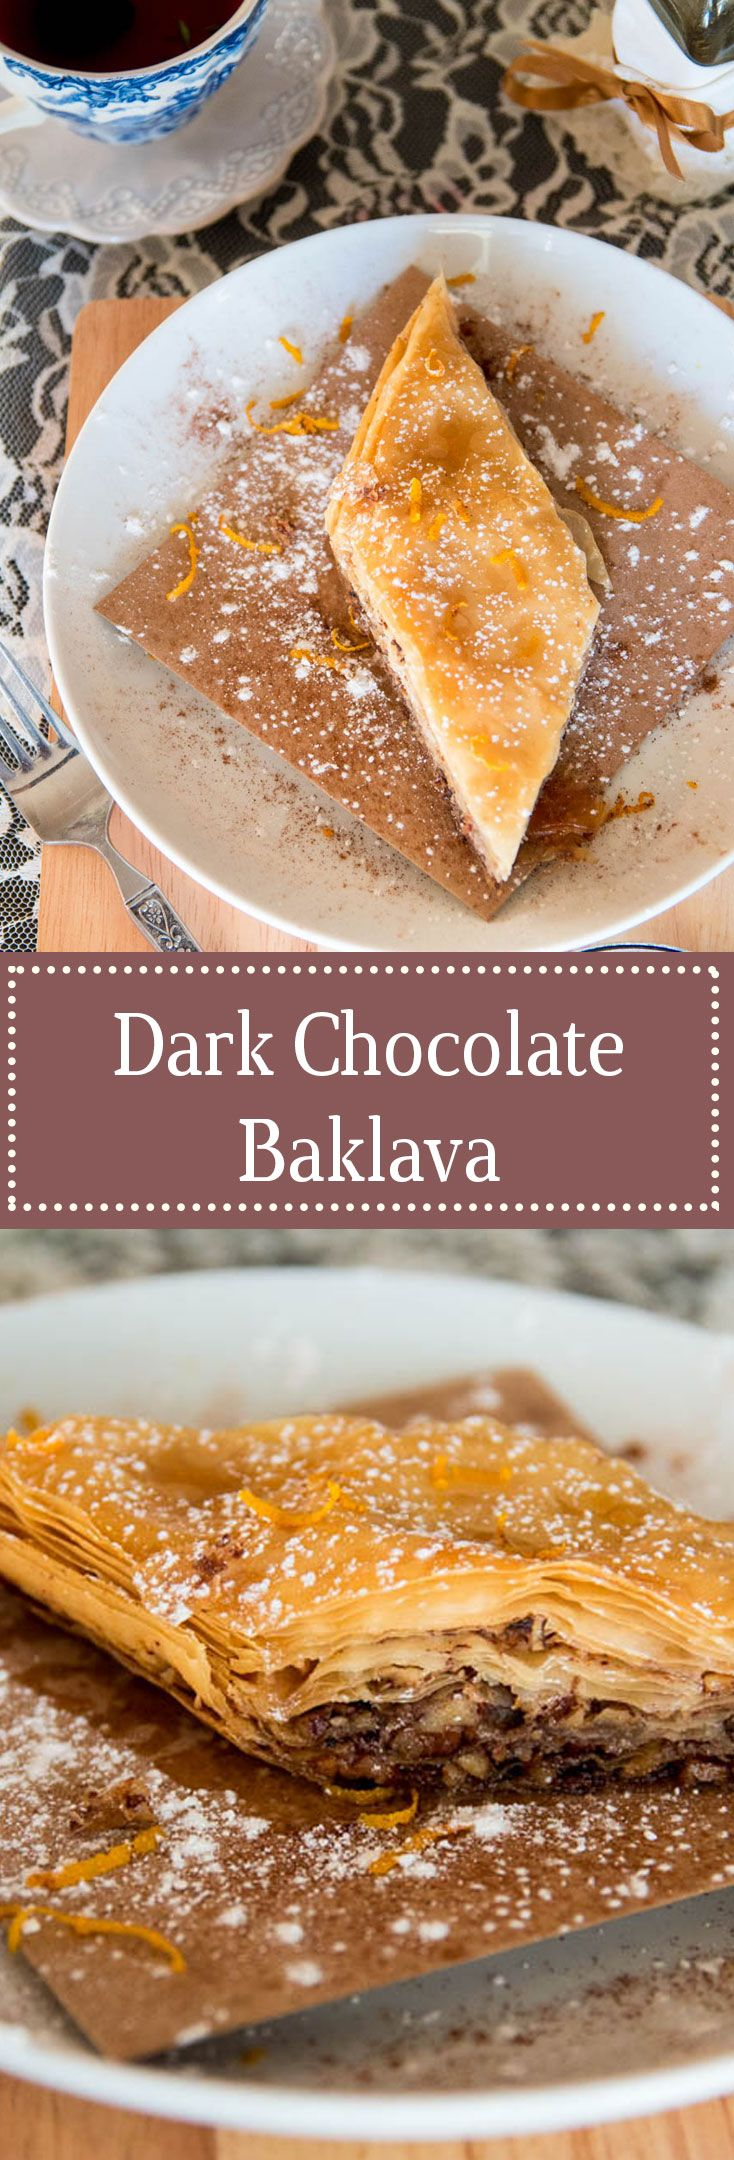 This chocolate Baklava version of the traditional Greek dessert is a cinch to make! Light flaky pastry with honey, chocolate, and nuts.